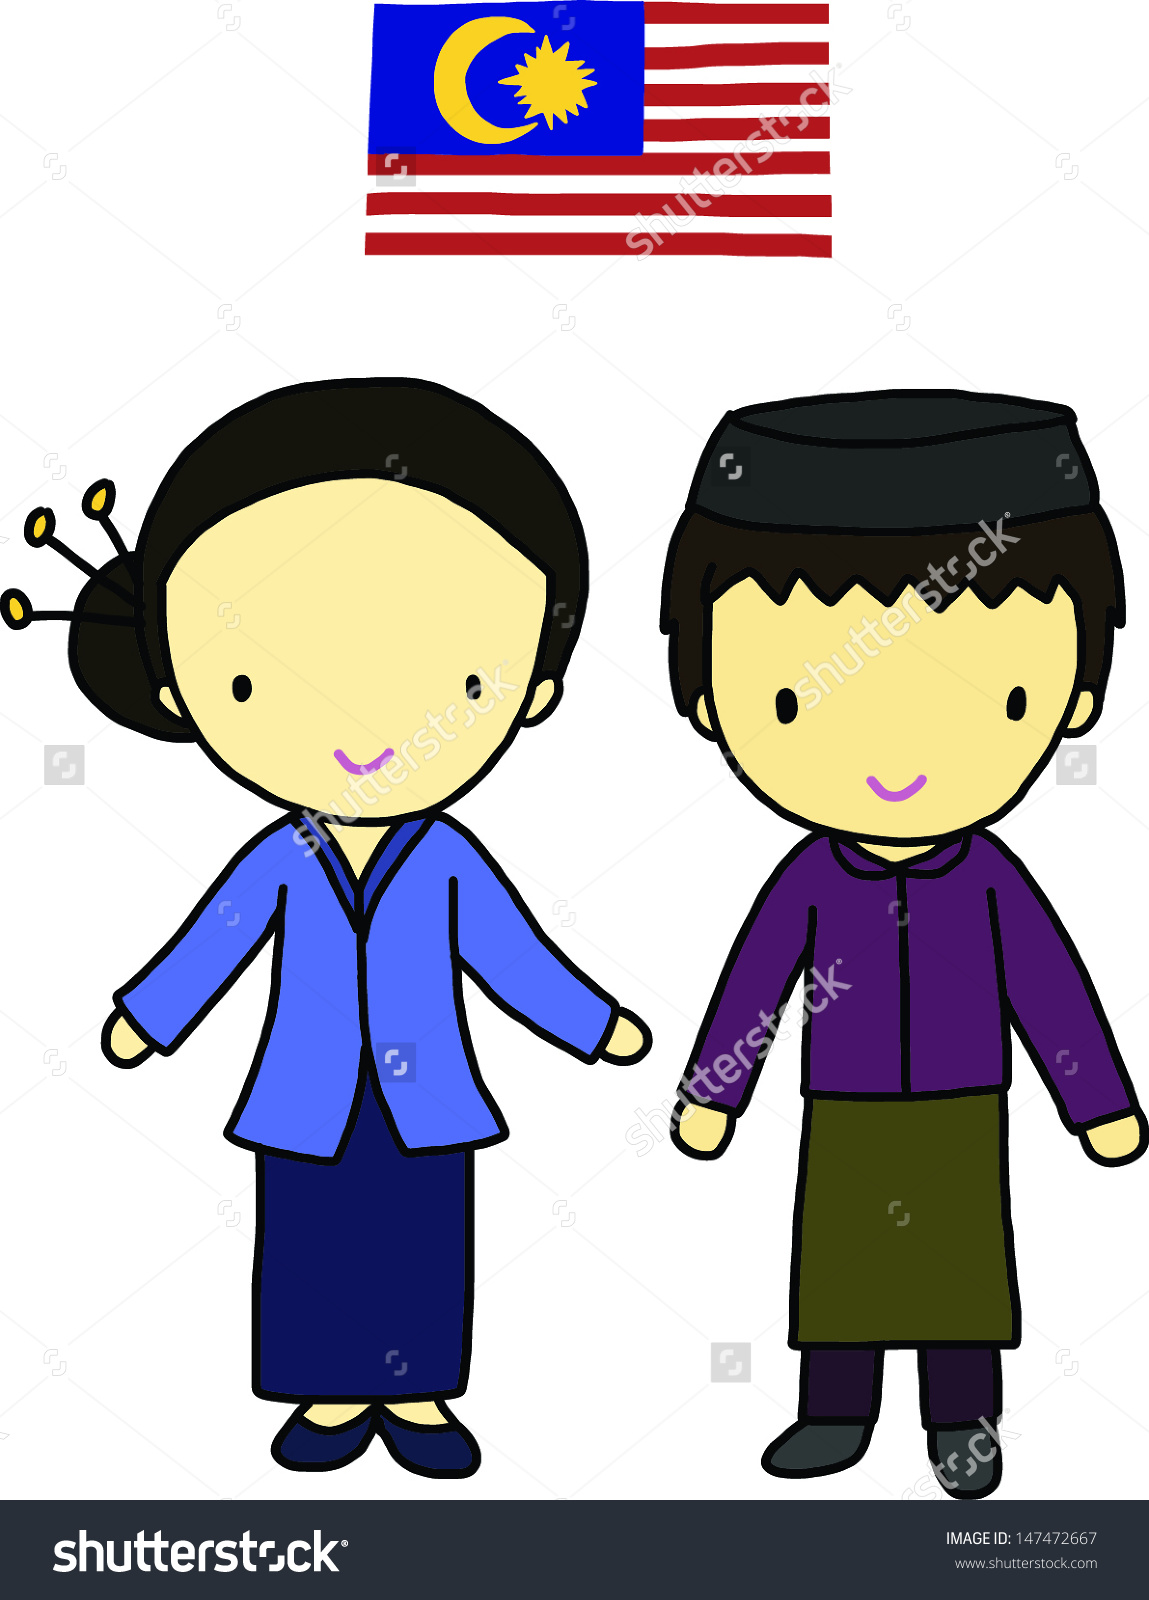 Malay people clipart.